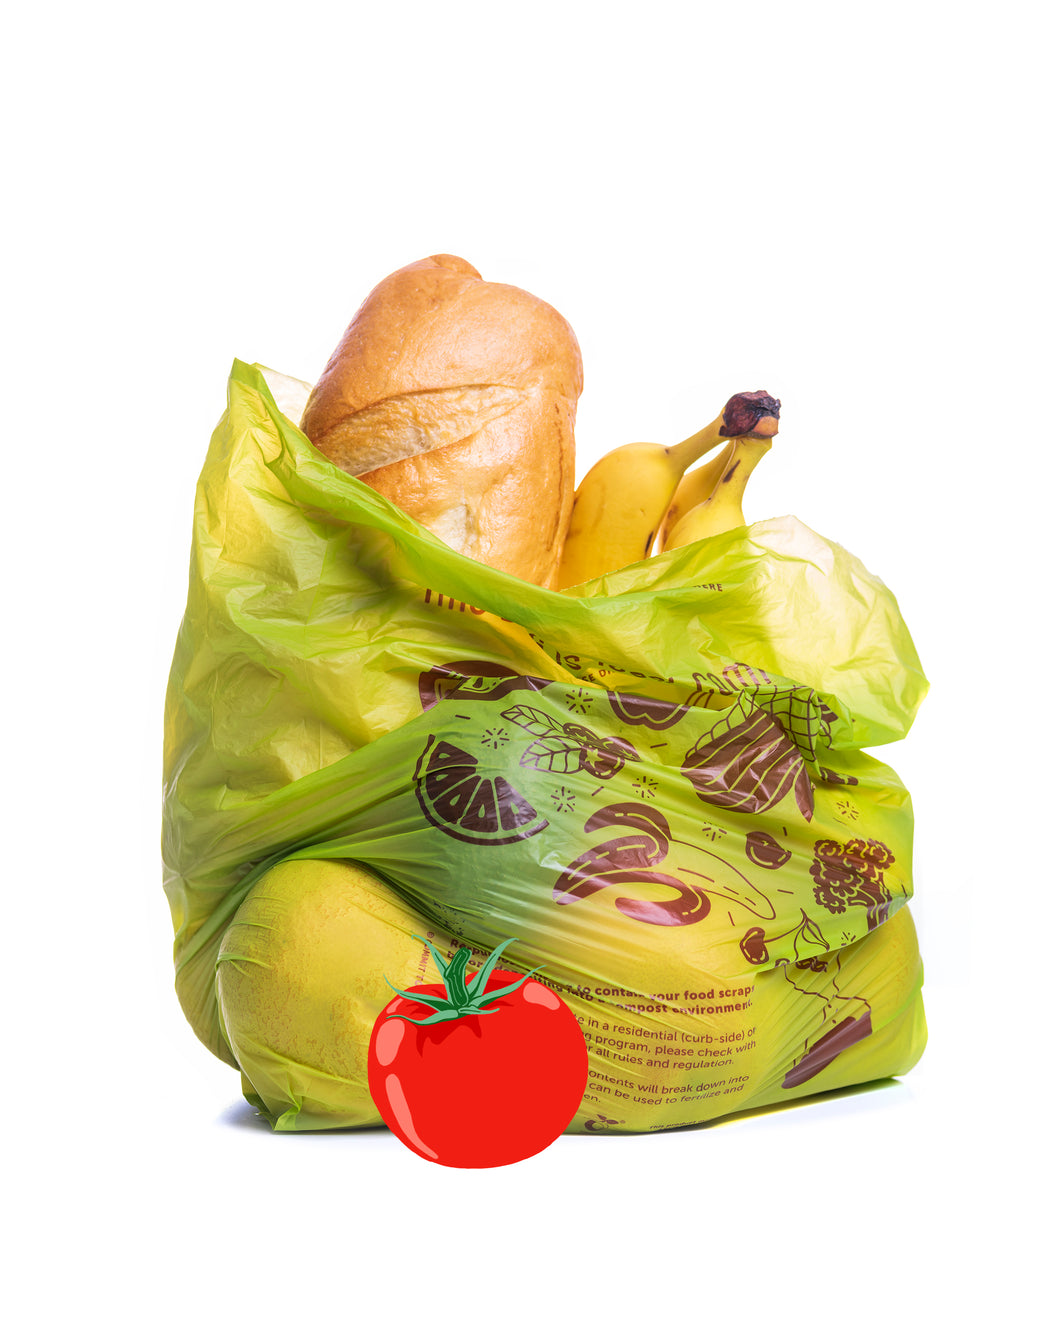 Compostable <br>Produce Bag on a Roll